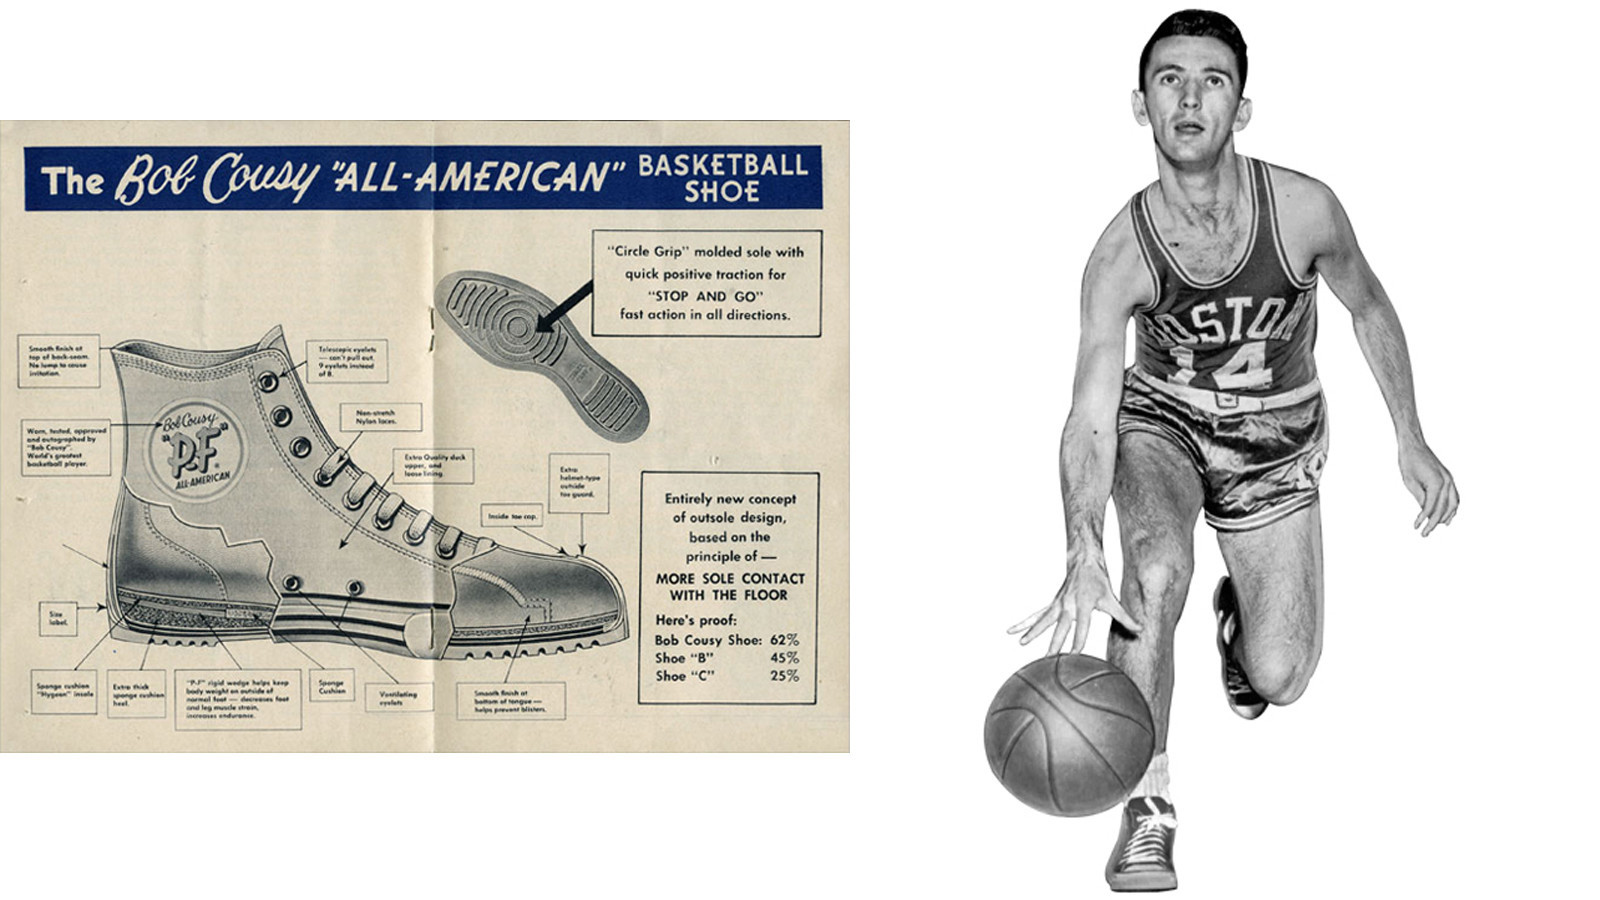 PF Flyers Bob Cousy All-American